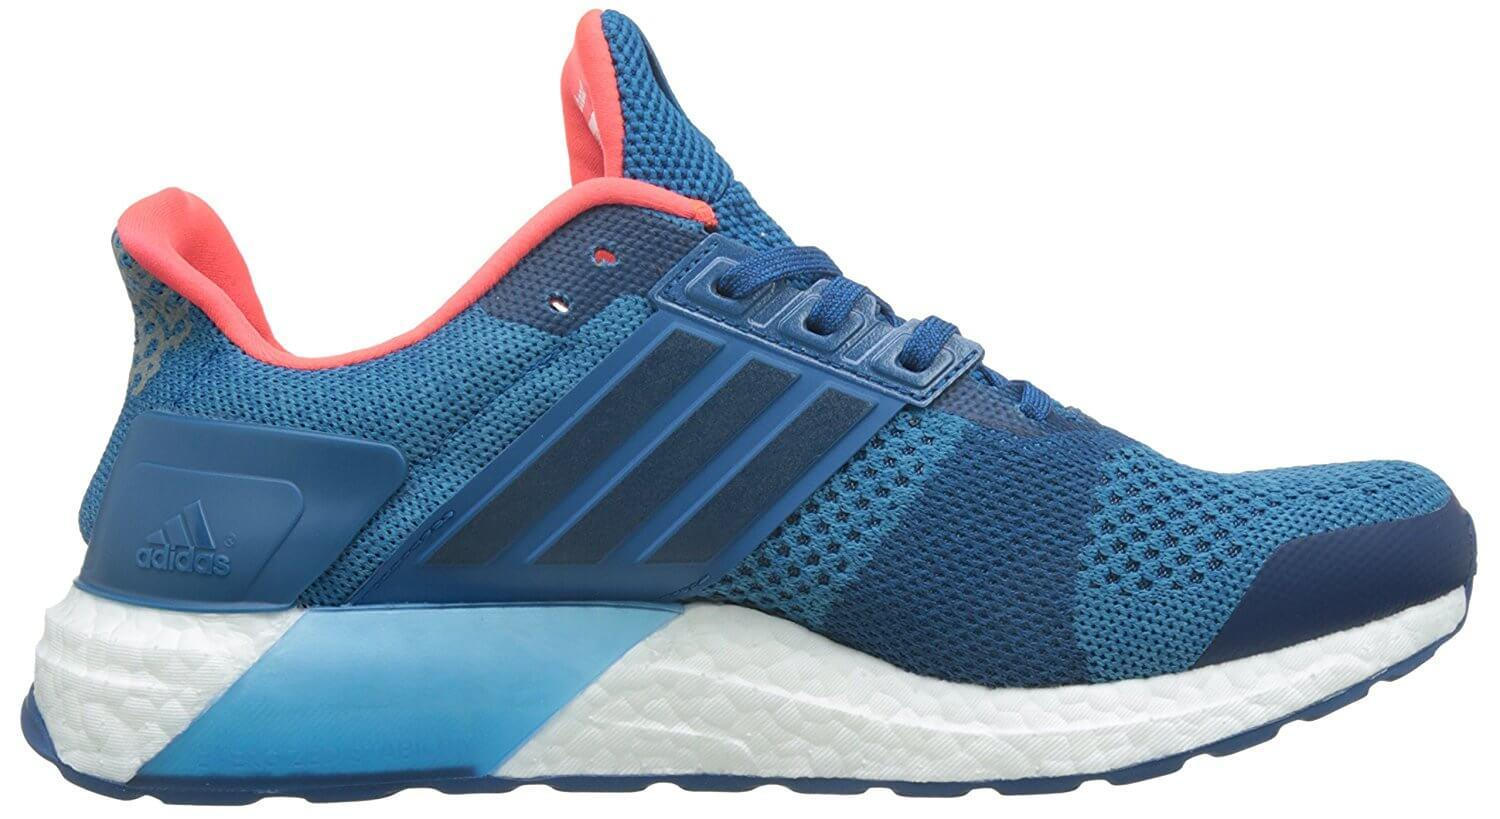 c366f321eab Adidas Ultra Boost ST Review - Buy or Not in May 2019